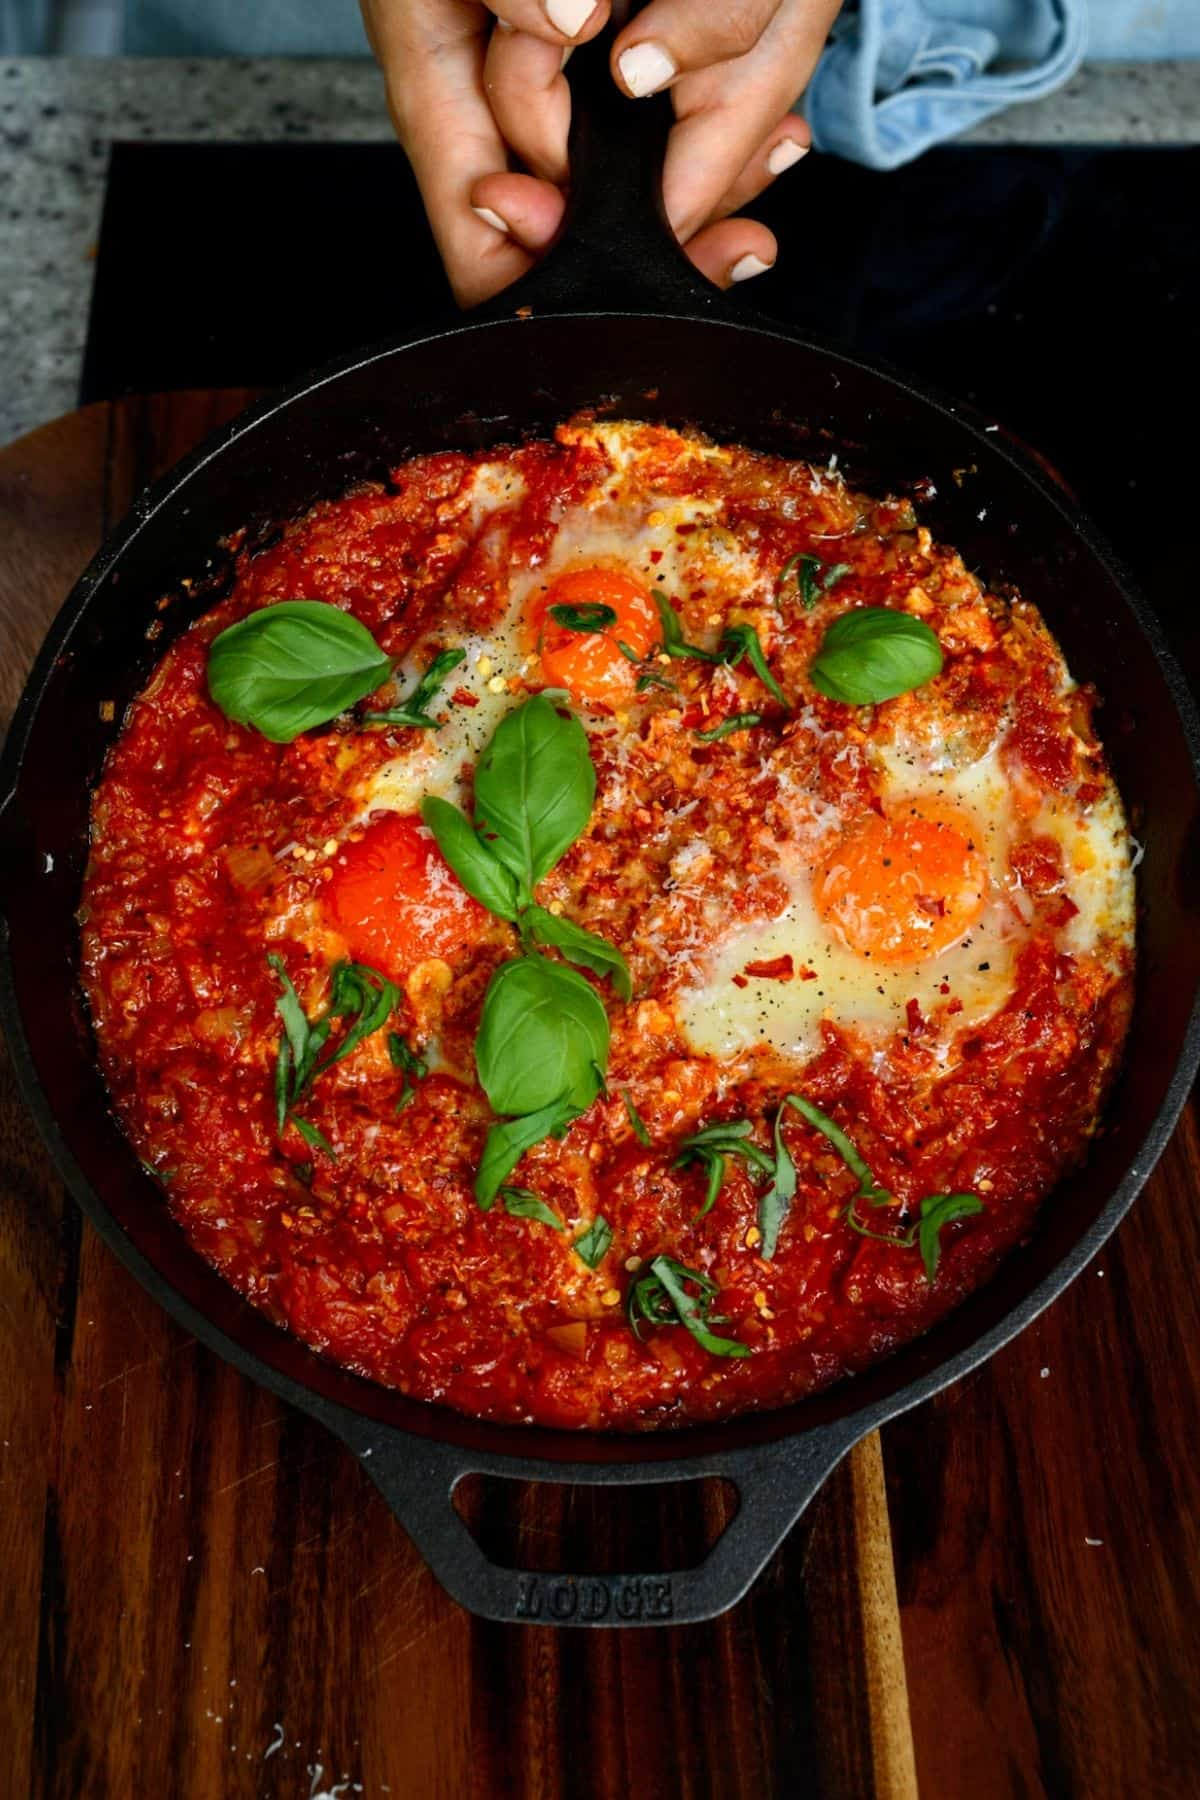 A skillet with eggs in purgatory